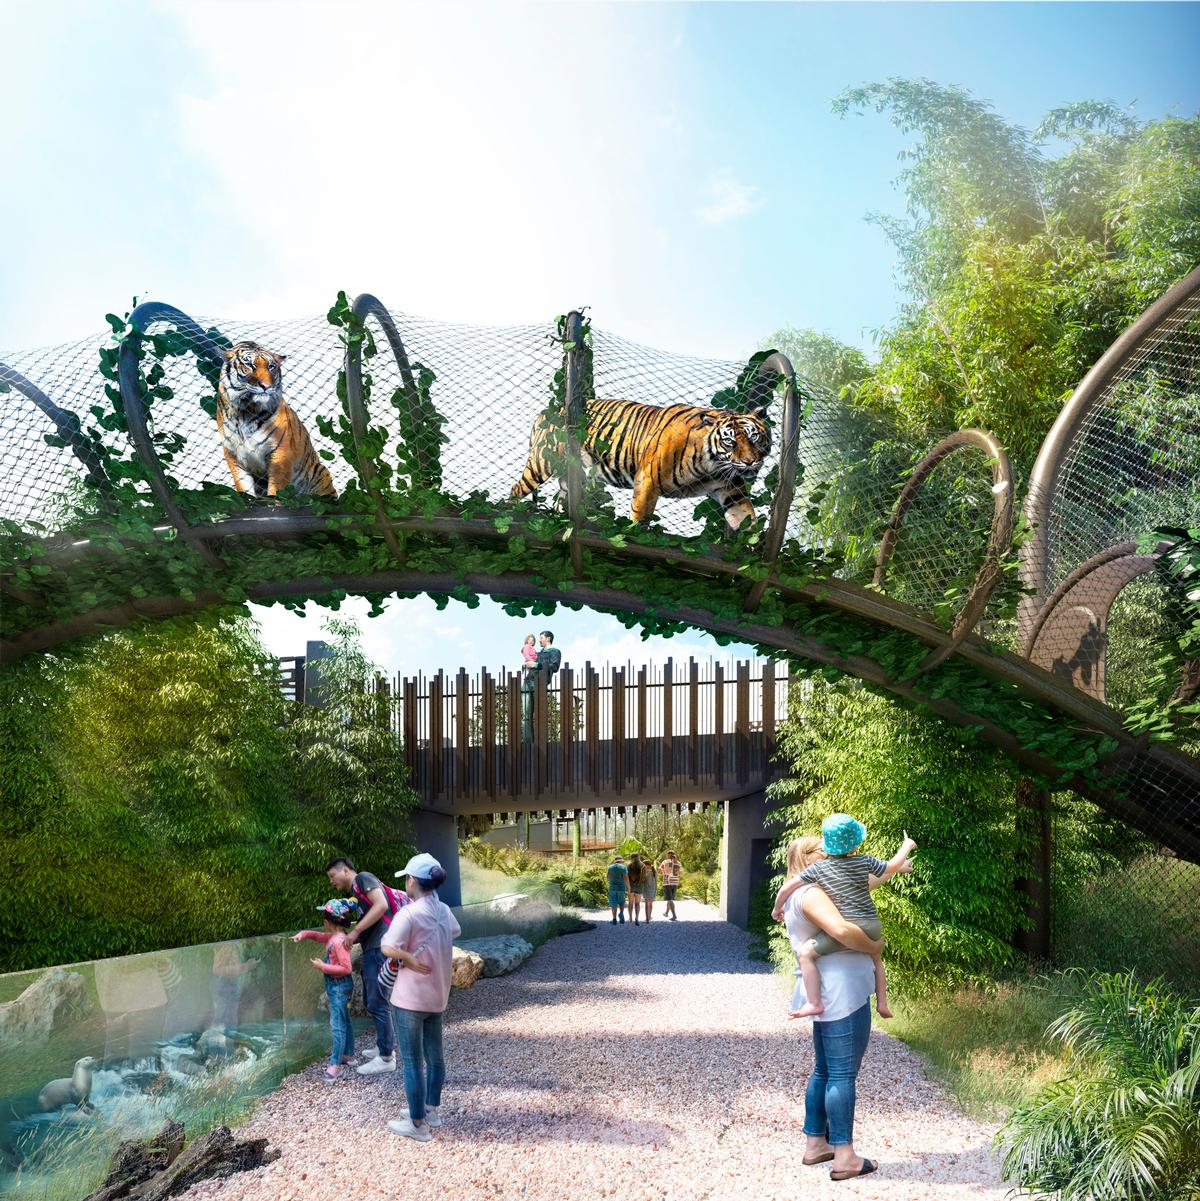 The lowland habitat includes elevated vantage points for tigers / Auckland Zoo